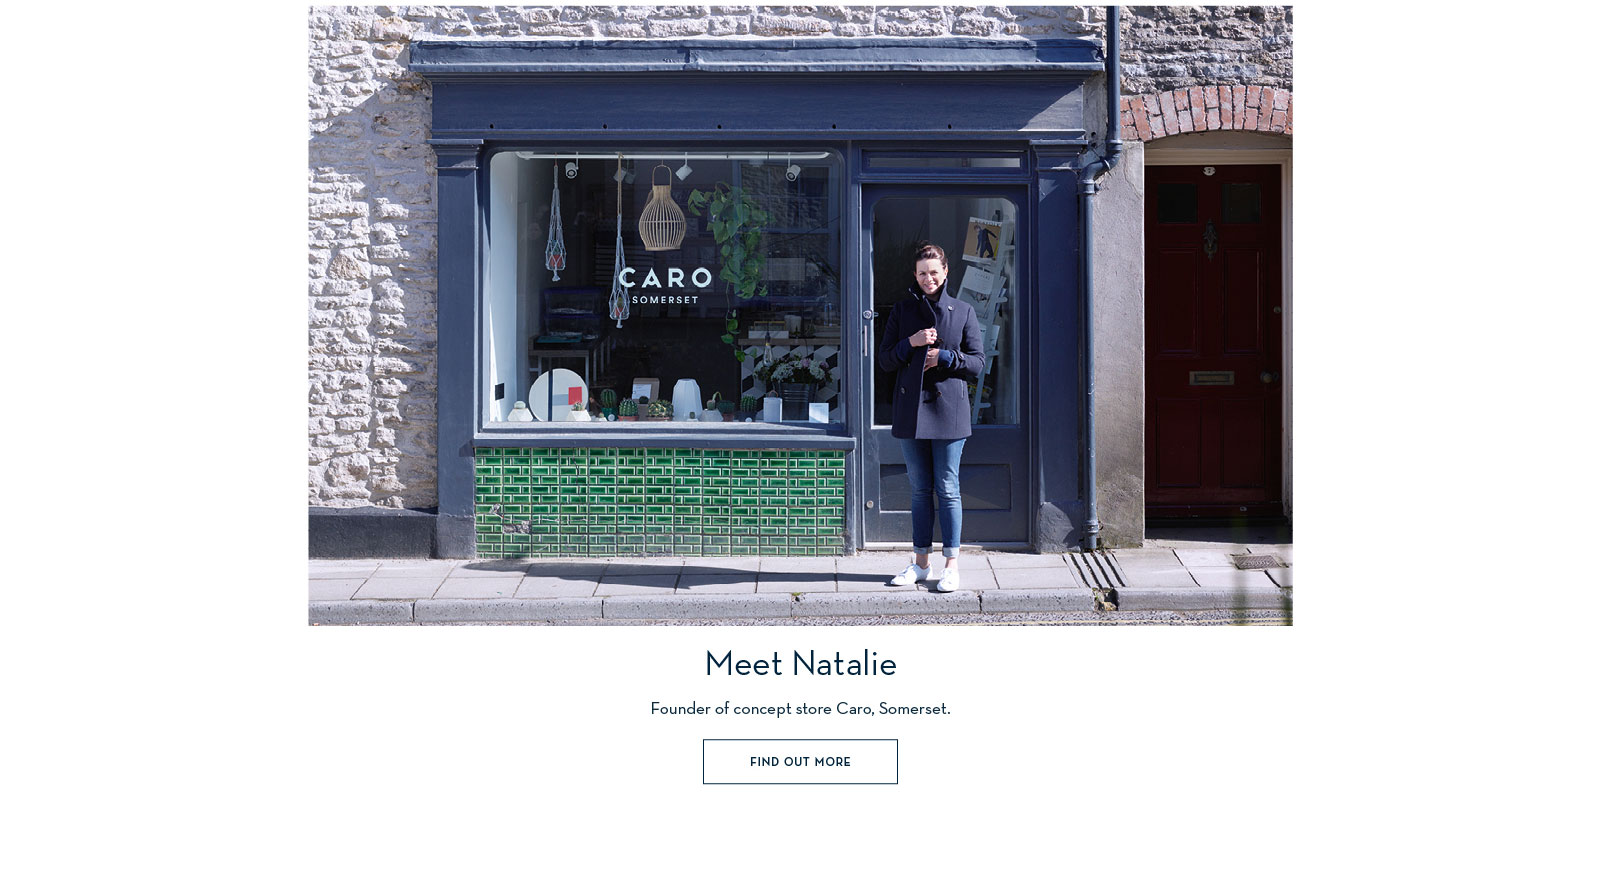 Meet Natalie - Founder of concept store Caro, Somerset